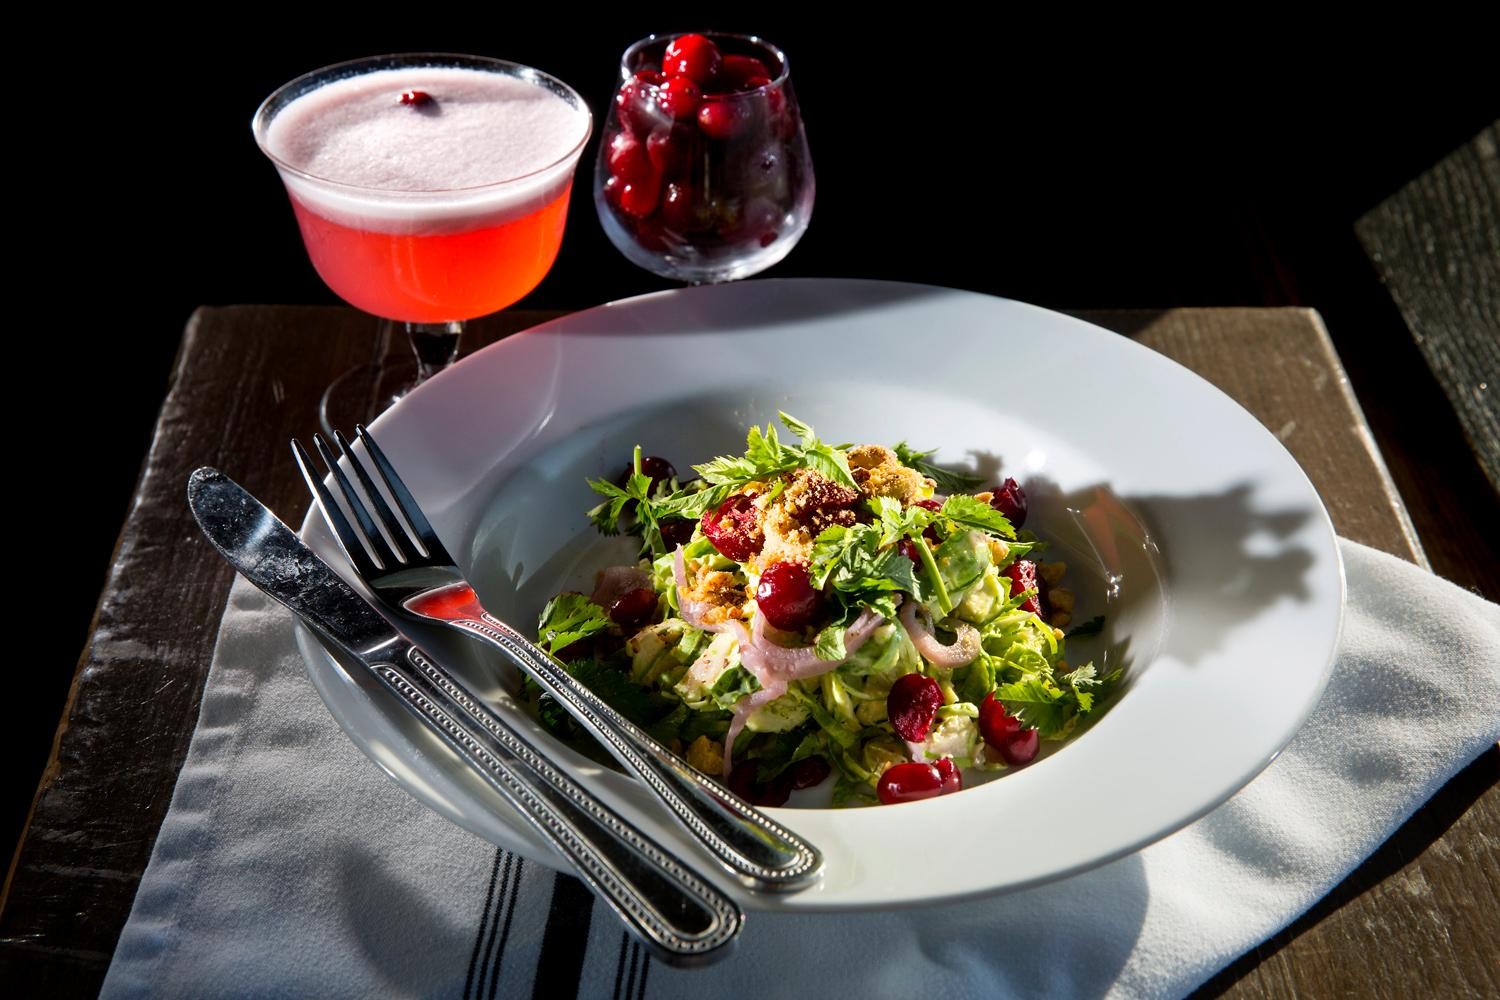 The brussels sprout salad, with raw brussels sprouts, cranberries, hazelnuts, topped with citrus vinaigrette, at Pickled Fish, located at 409 Sid Snyder Dr, Long Beach, WA. (Sy Bean / Seattle Refined)